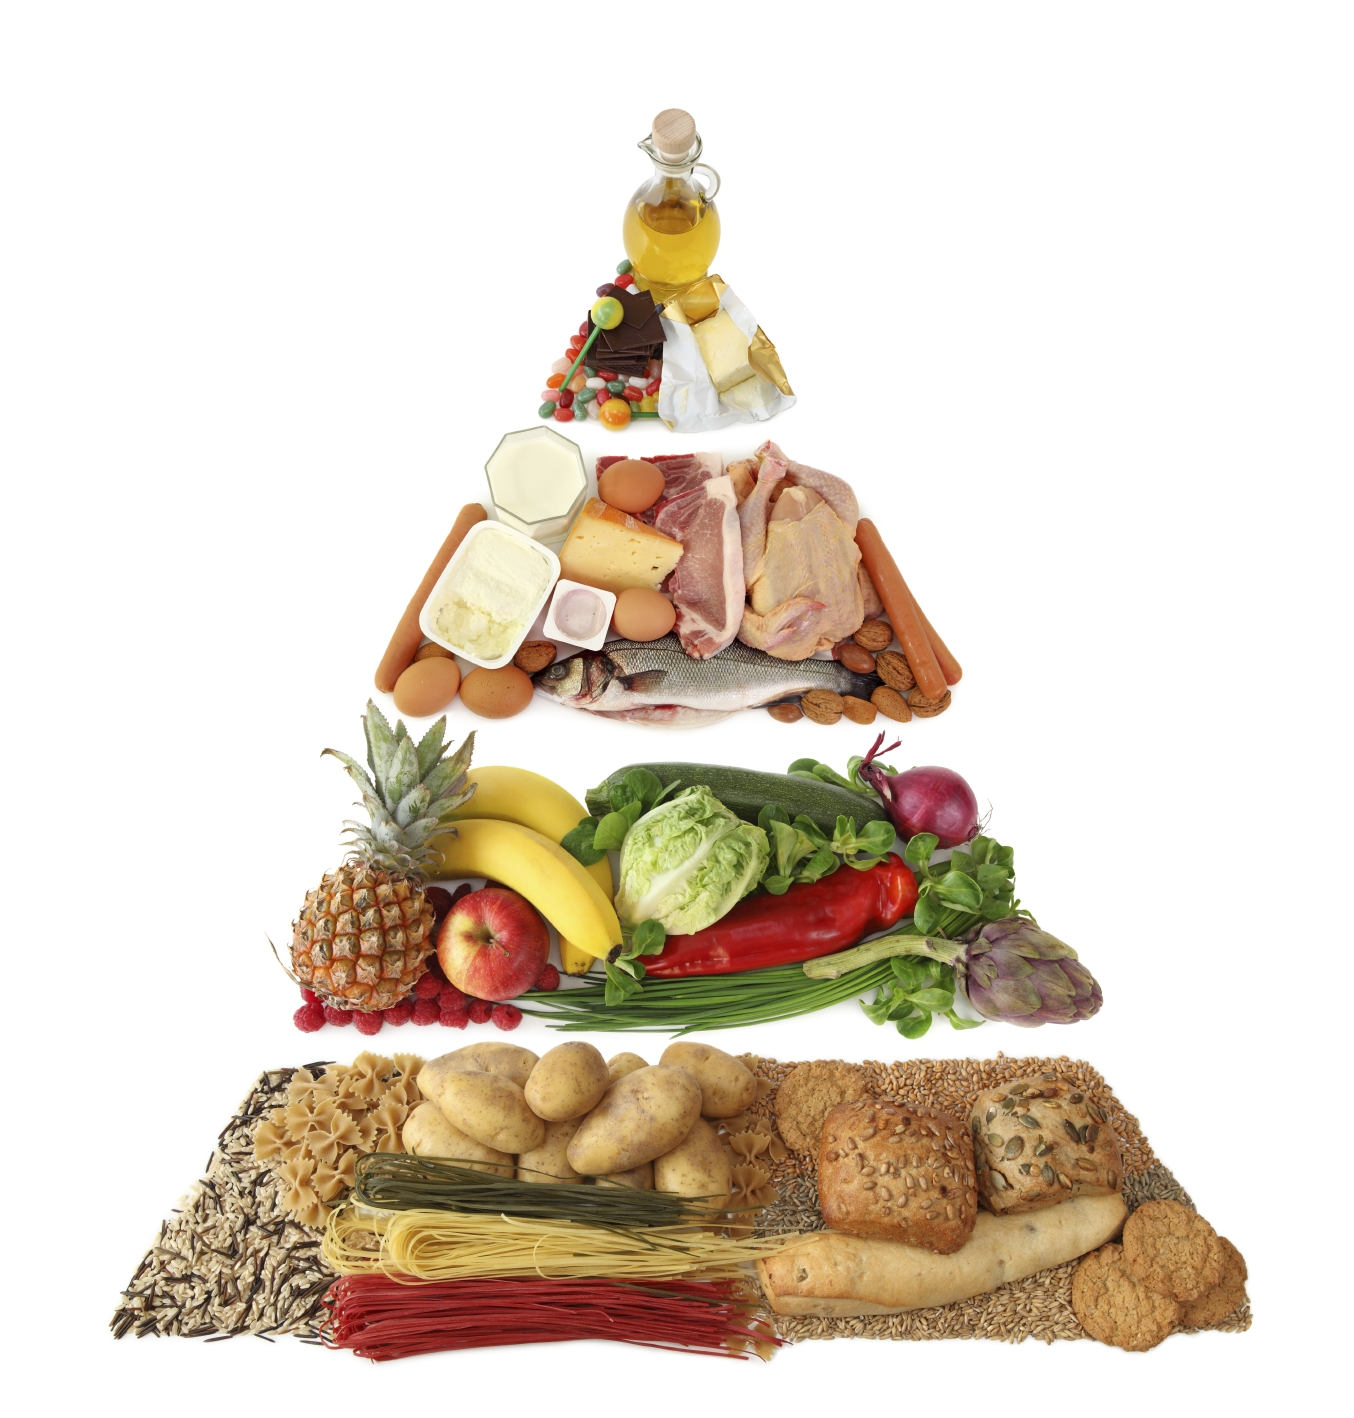 Weight Gain Food Pyramid